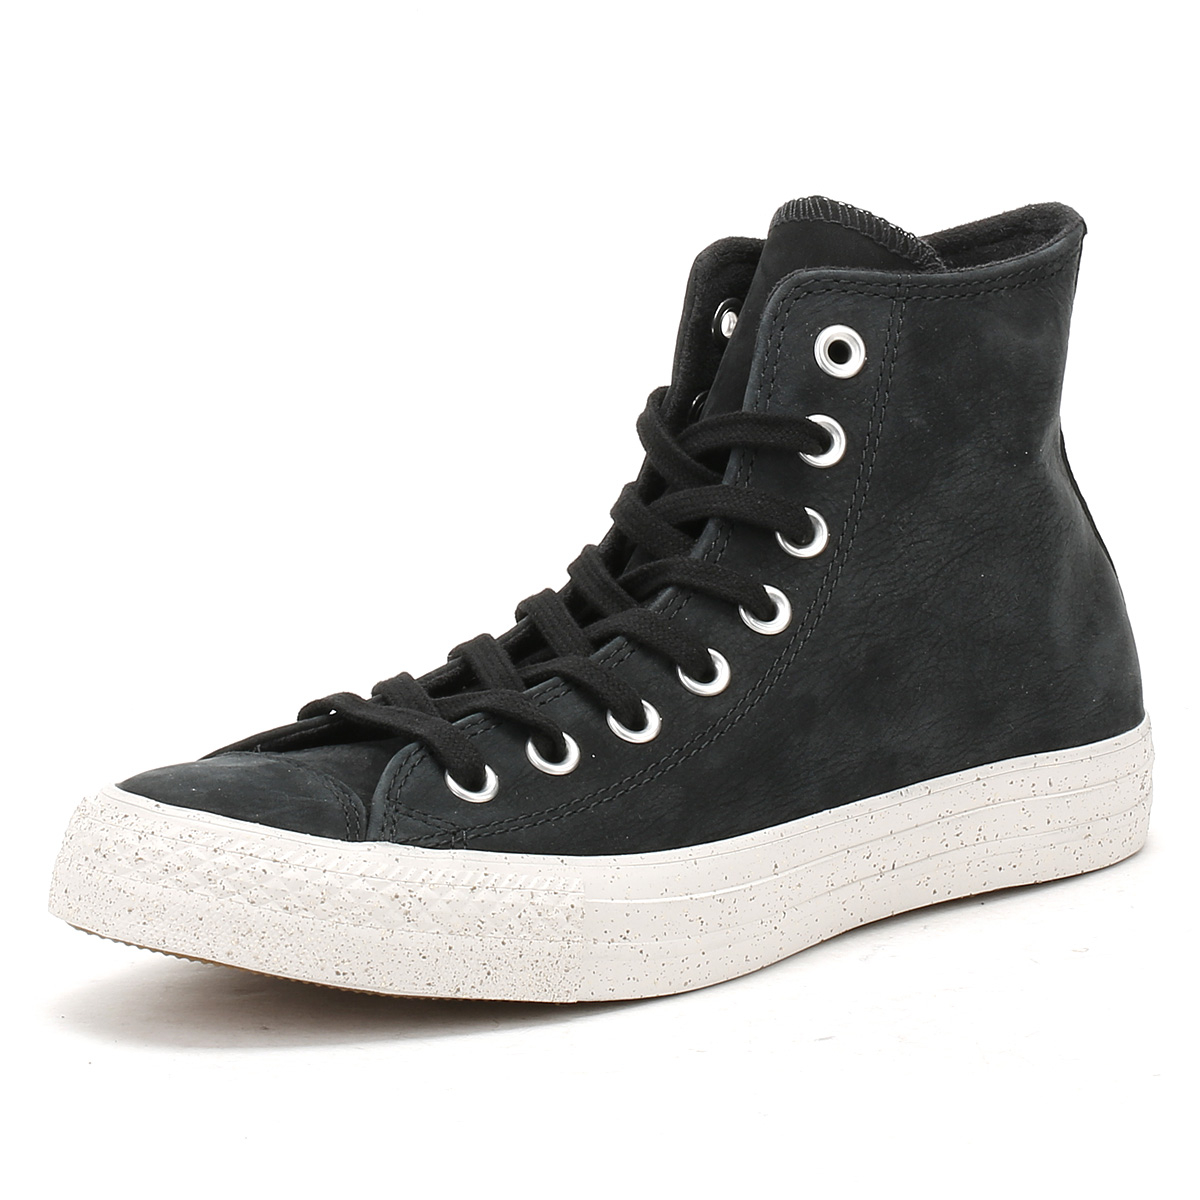 a45eb7933c01 Details about Converse Mens Trainers Chuck Taylor All Star Black Nubuck Hi  Tops Sneakers Shoes